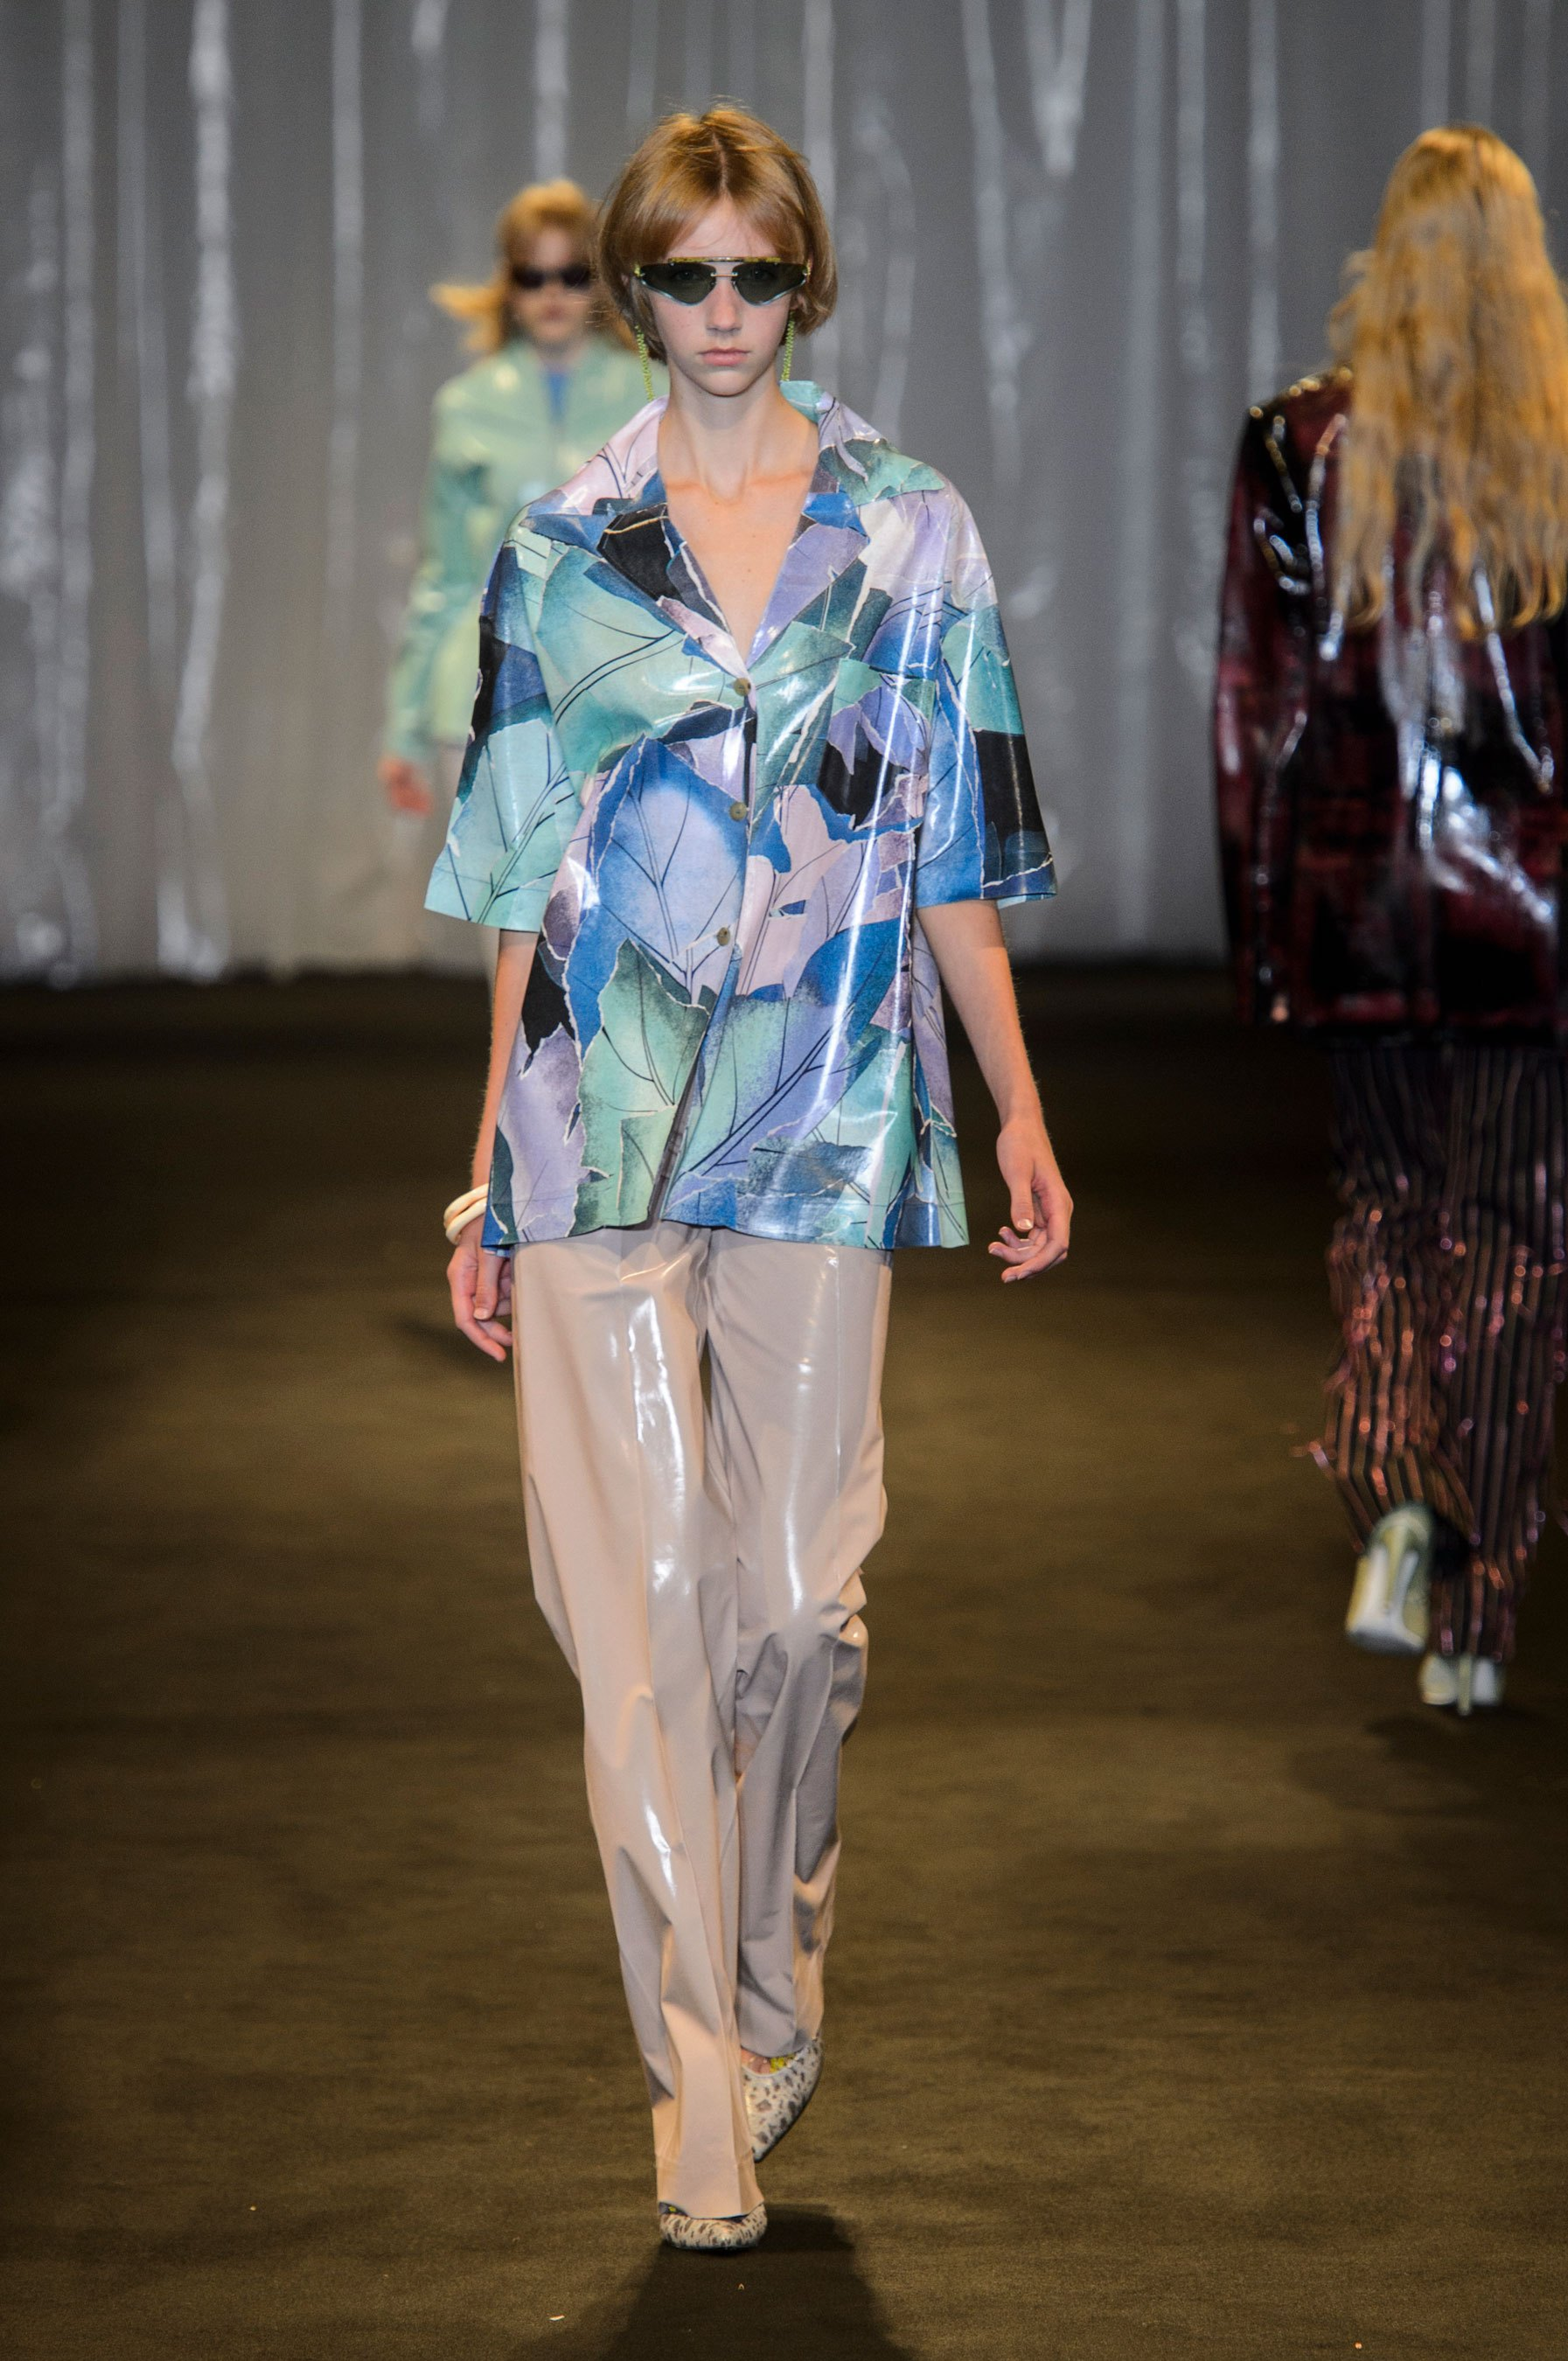 The Top 10 Breakout Models Who Walked the Most Shows of Spring 2018